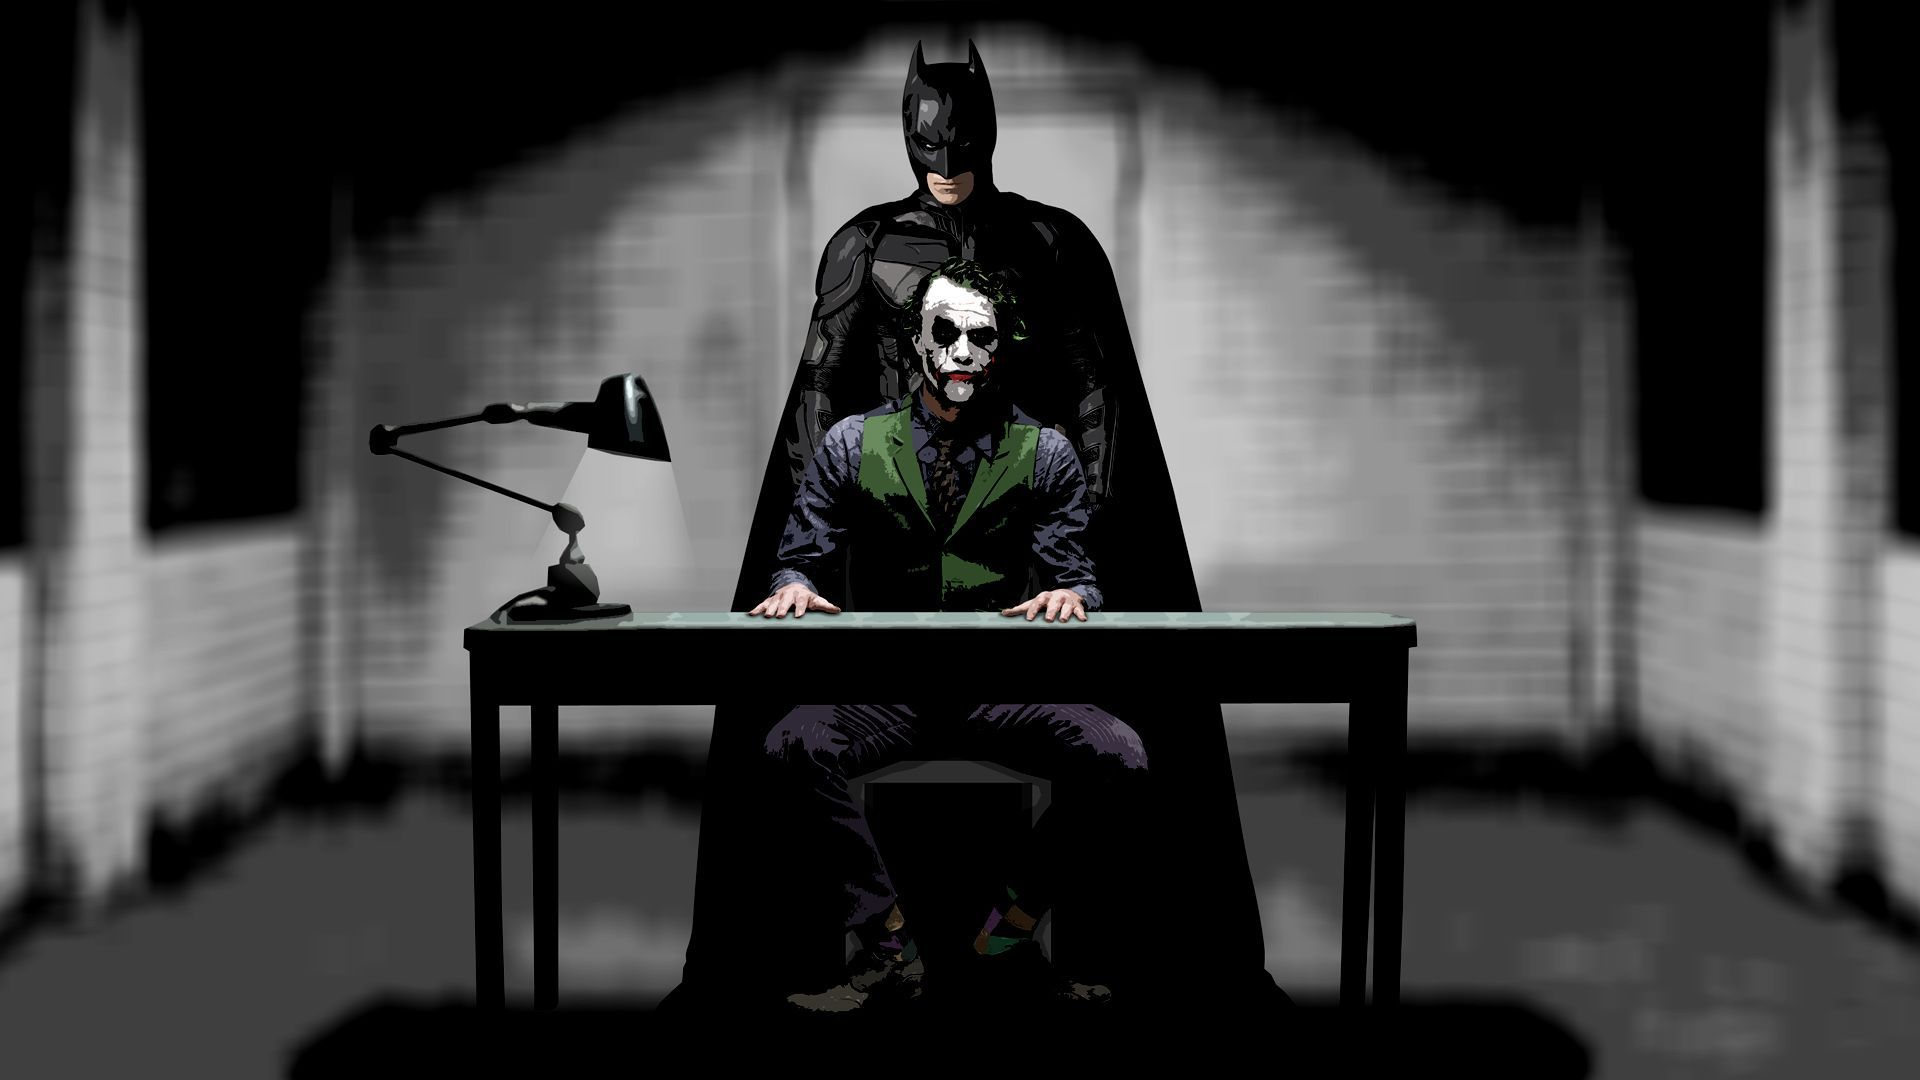 batman joker wallpaper sf wallpaper